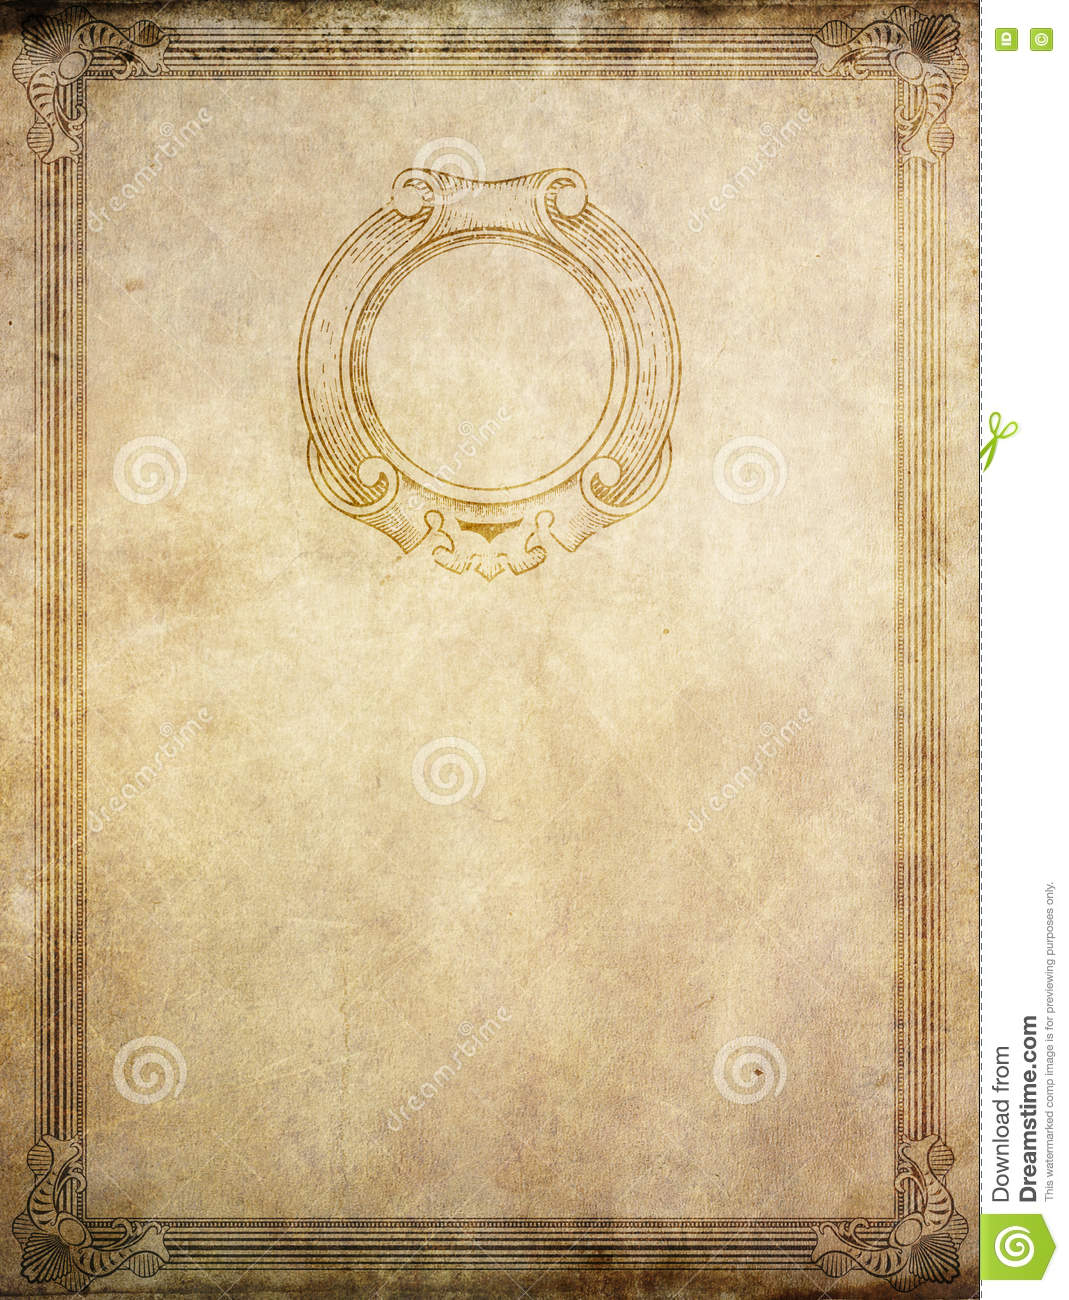 old paper background with vintage border and frame. stock image